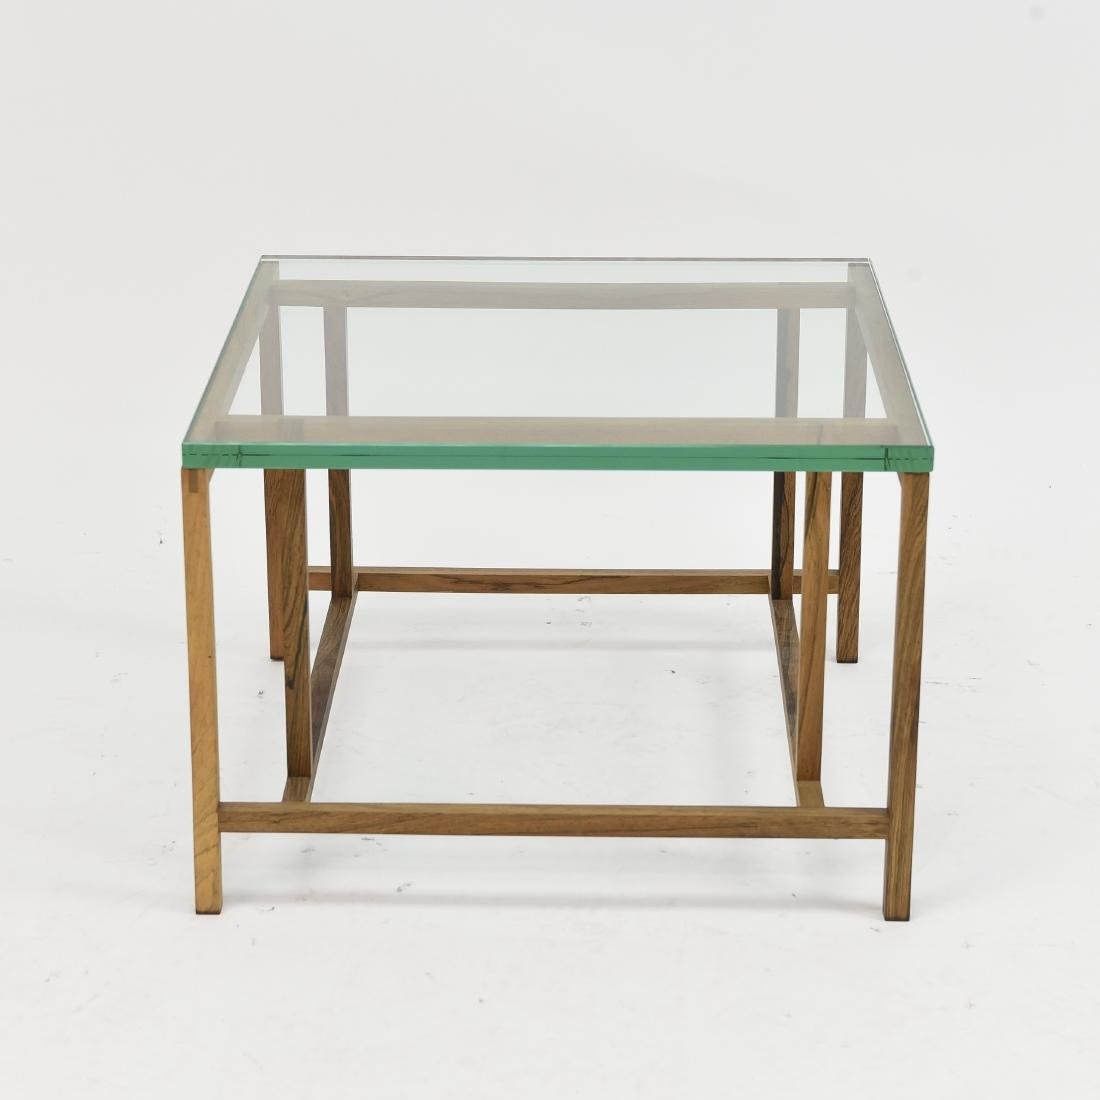 HENNING NORGAARD FOR KOMFORT RANDERS TABLE